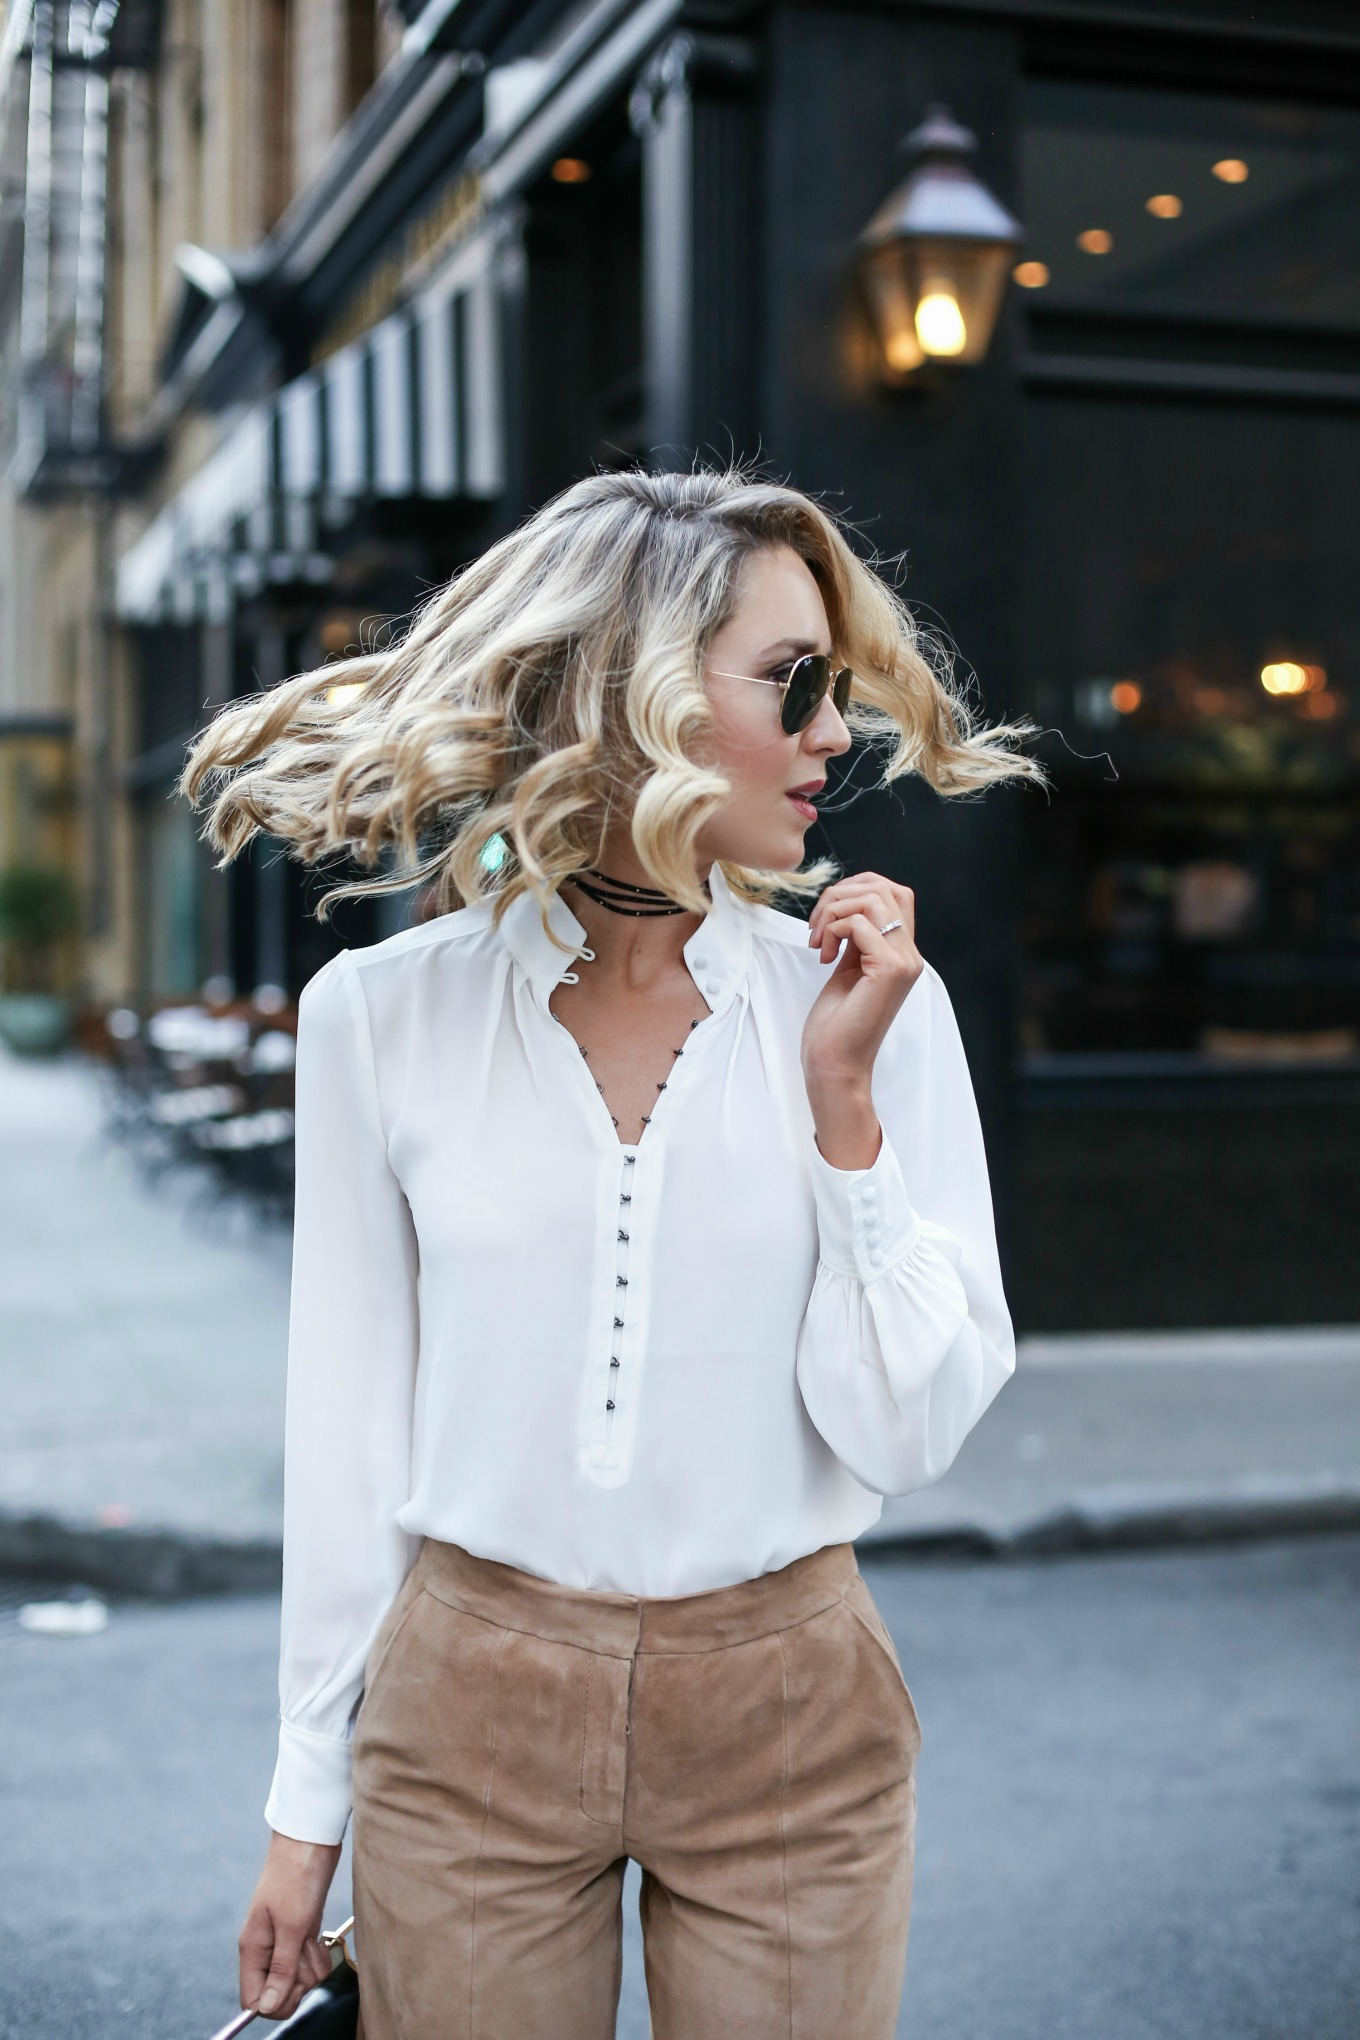 white-victorian-blouse-curled-hairstyle-choker-necklace-aviator-sunglasses